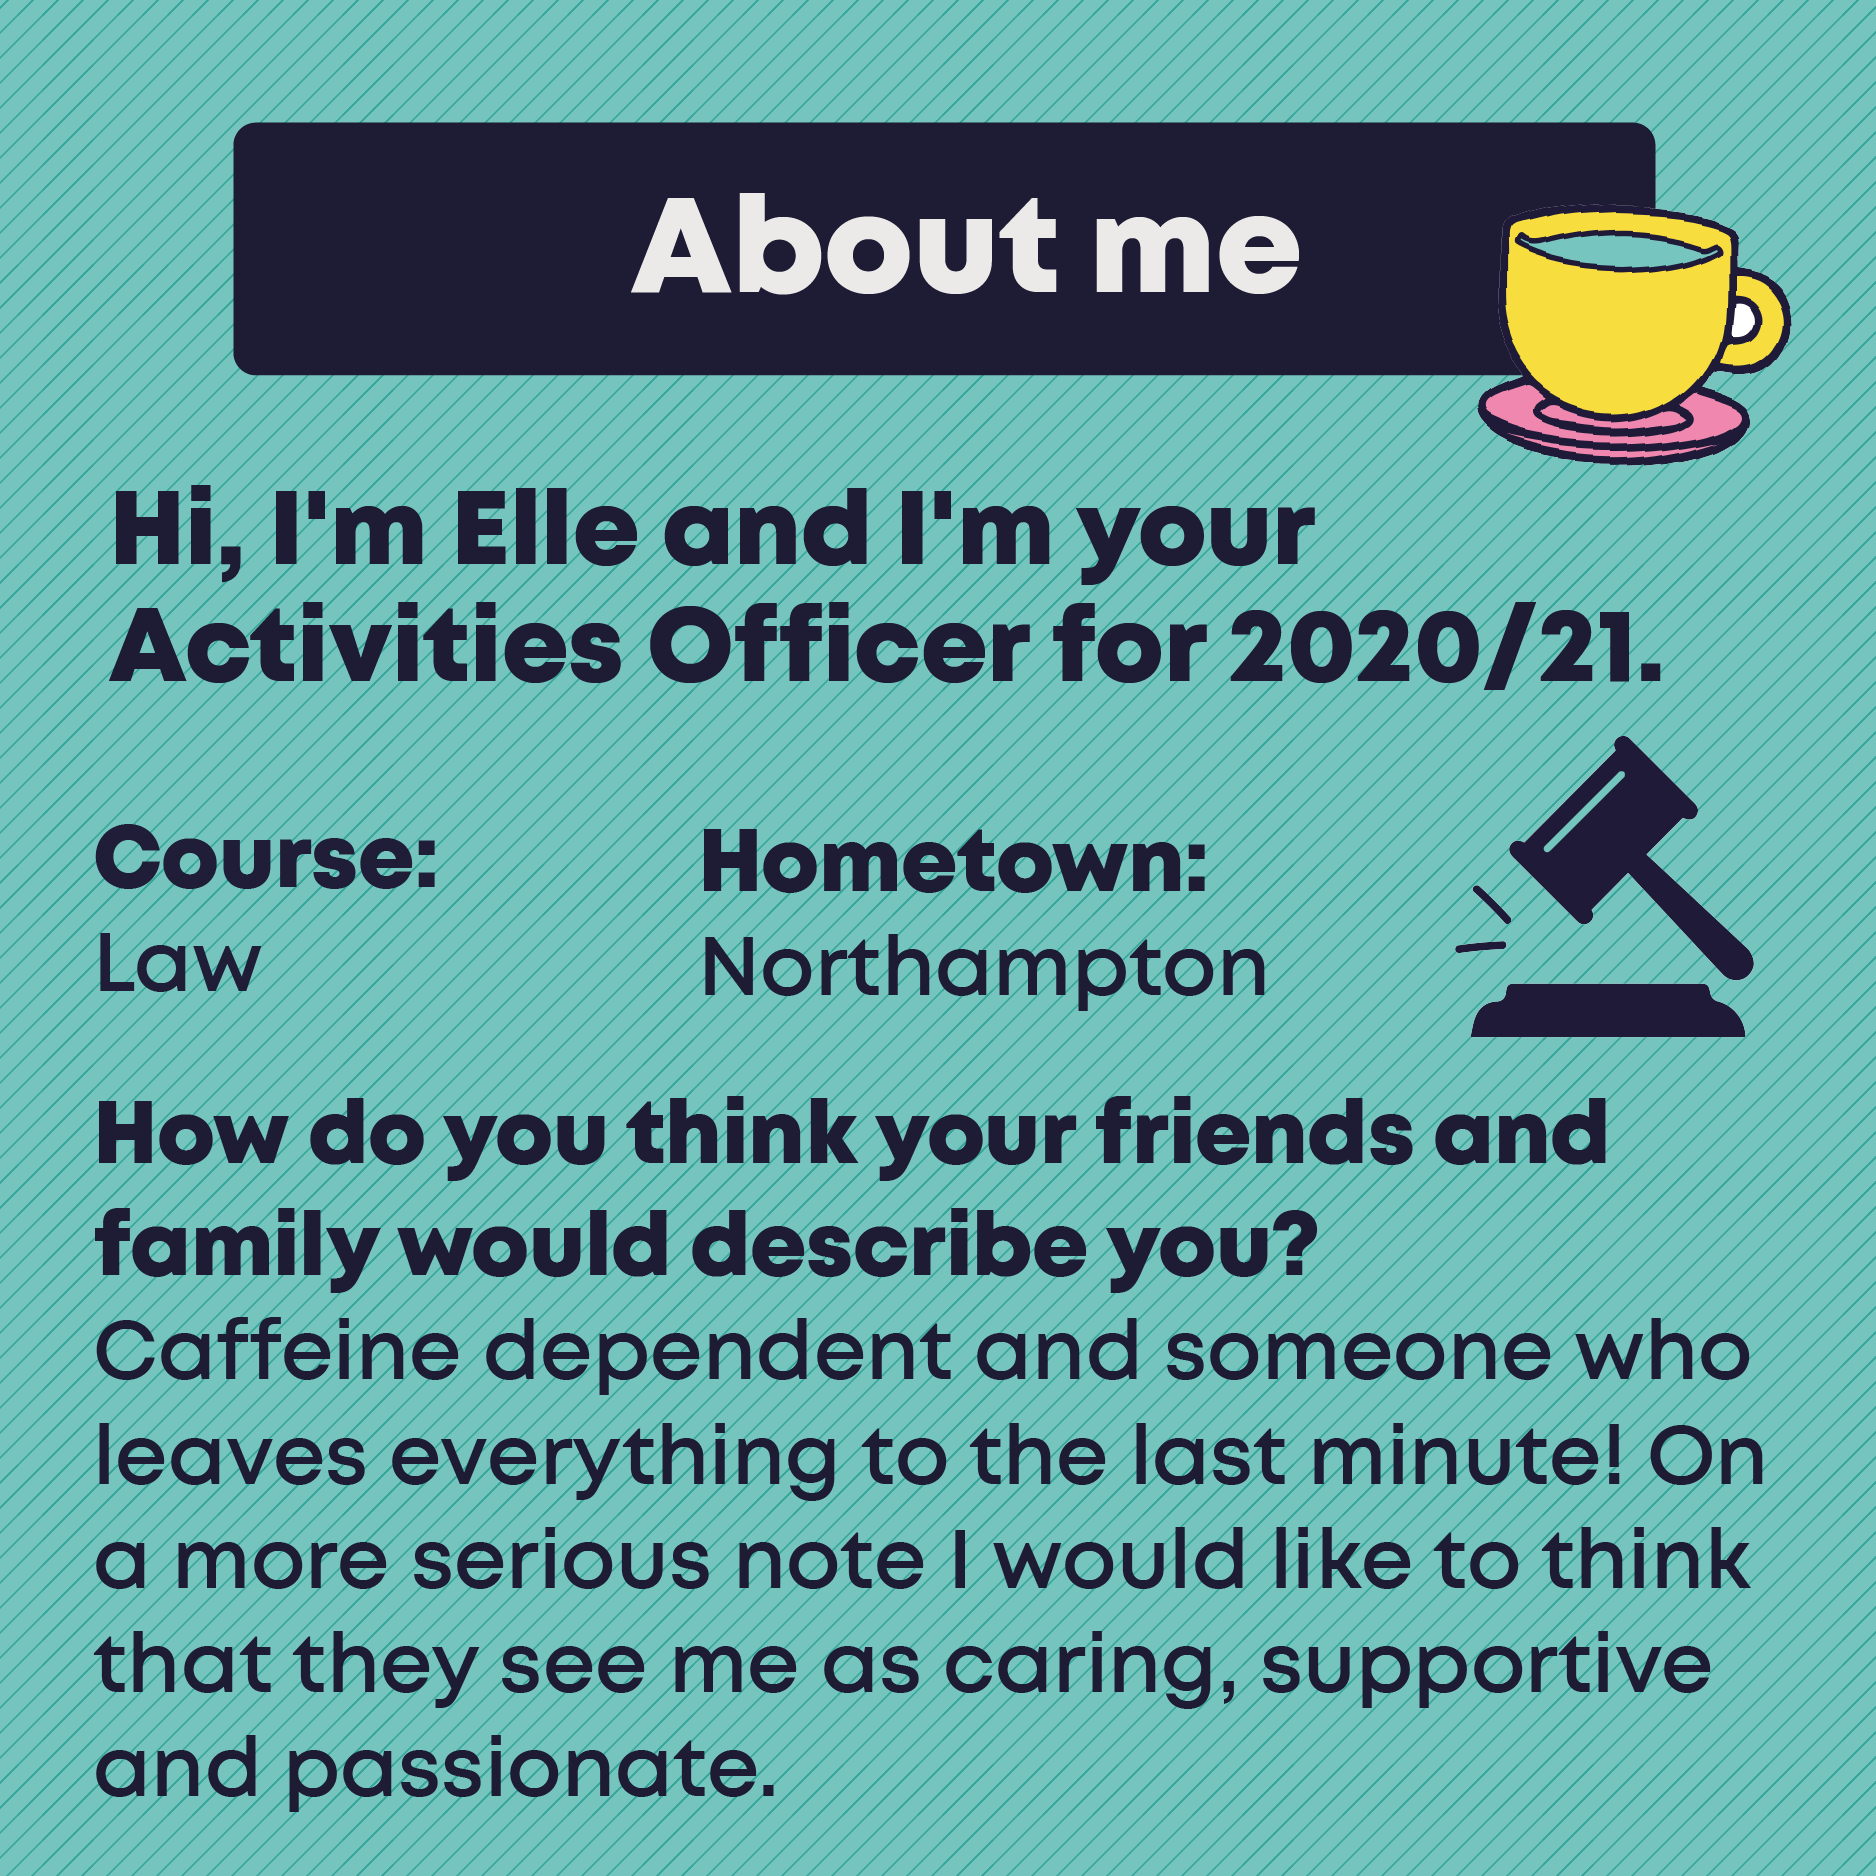 About me. Hi, I'm Elle and I'm your Activities Officer for 2020/21. Course: Law. Hometown: Northampton.  How do you think your friends and family would describe you? Caffeine dependent and someone who leaves everything to the last minute! On a more serious note I would like to think that they see me as caring, supportive and passionate.